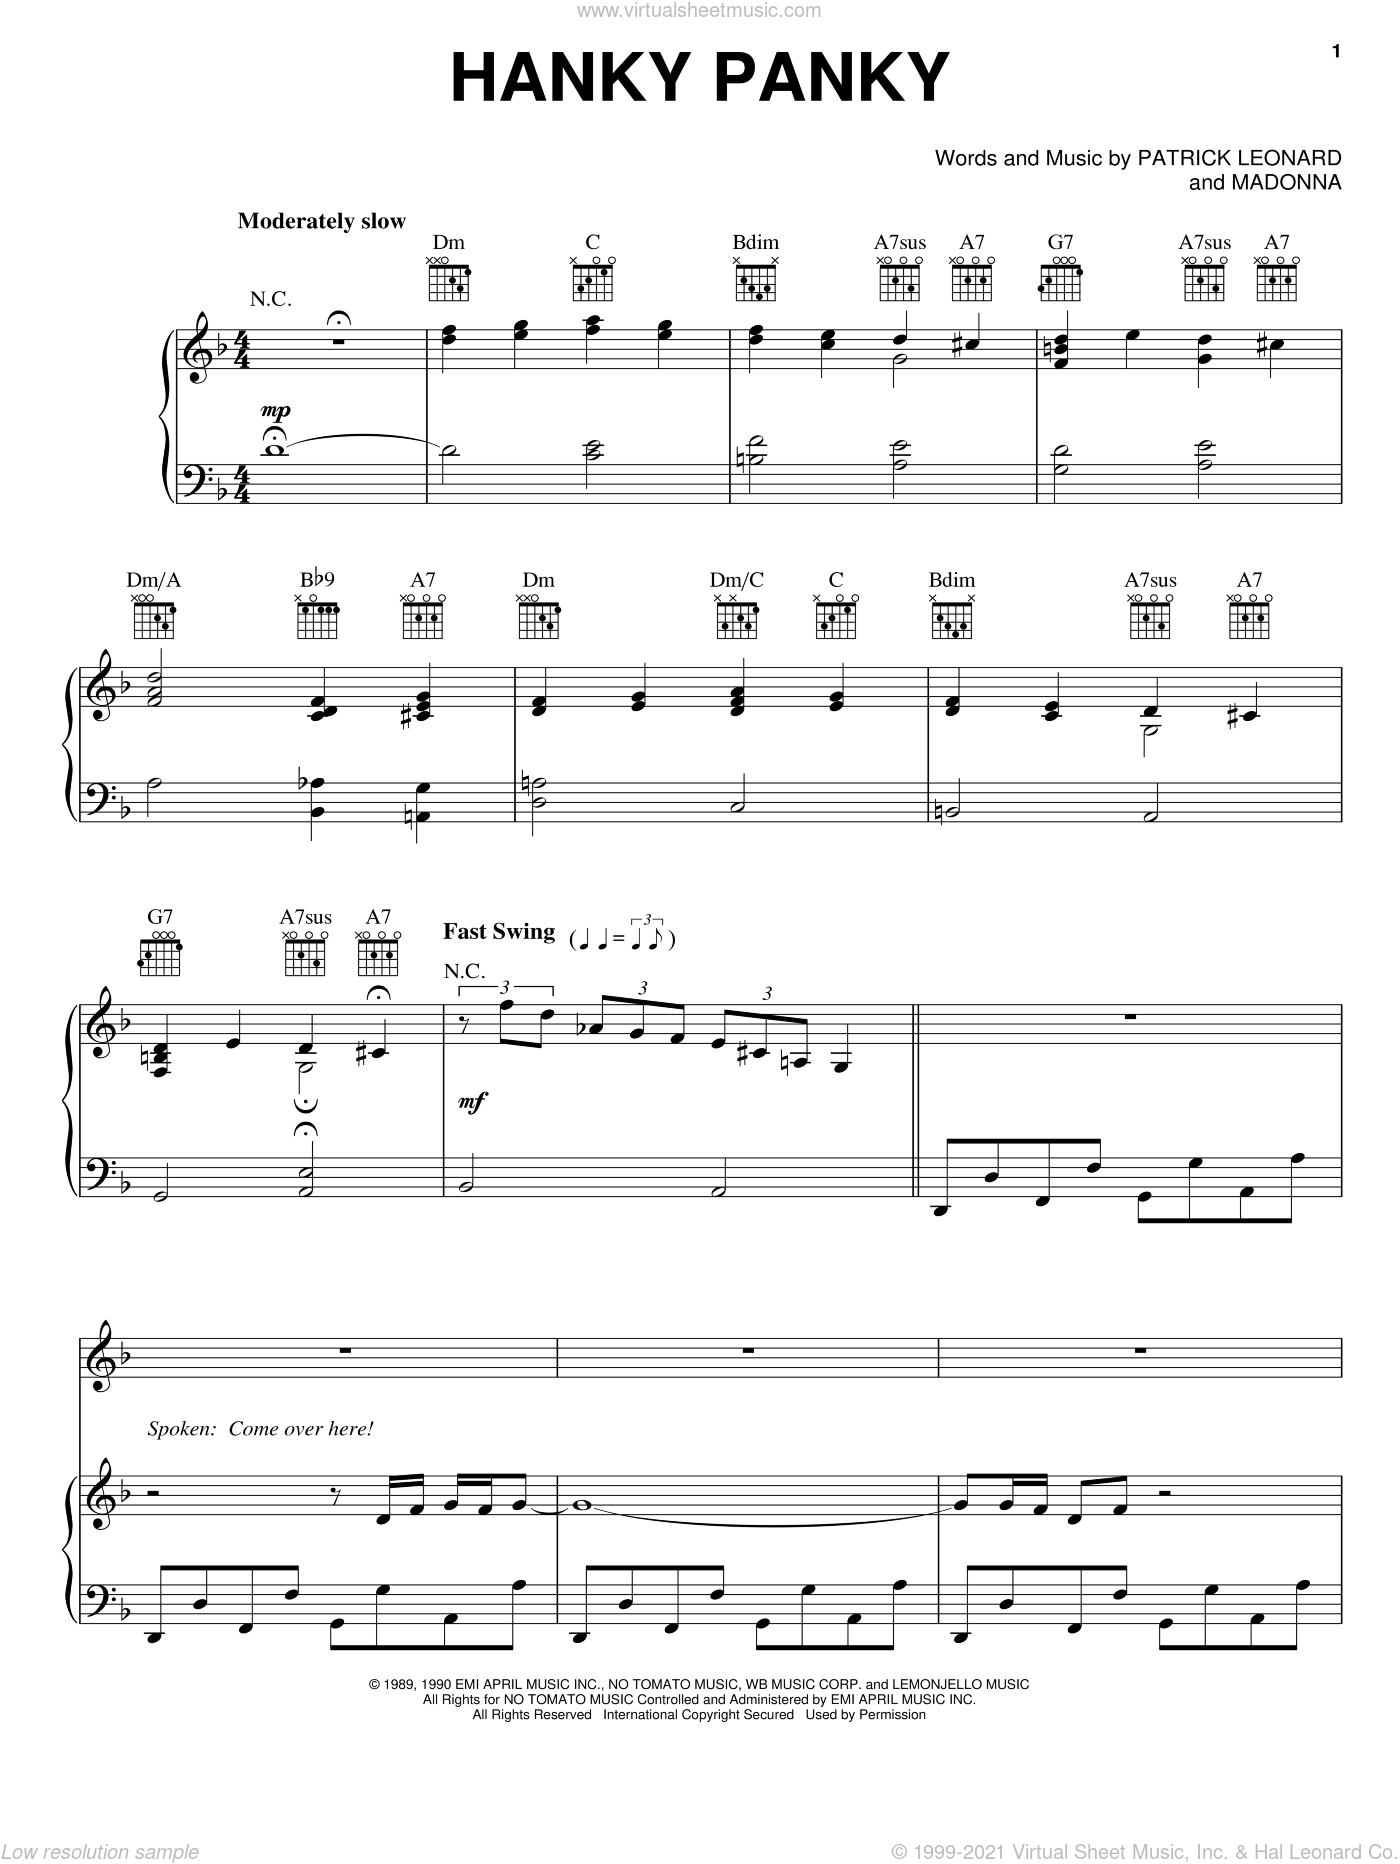 Hanky Panky sheet music for voice, piano or guitar by Patrick Leonard and Madonna